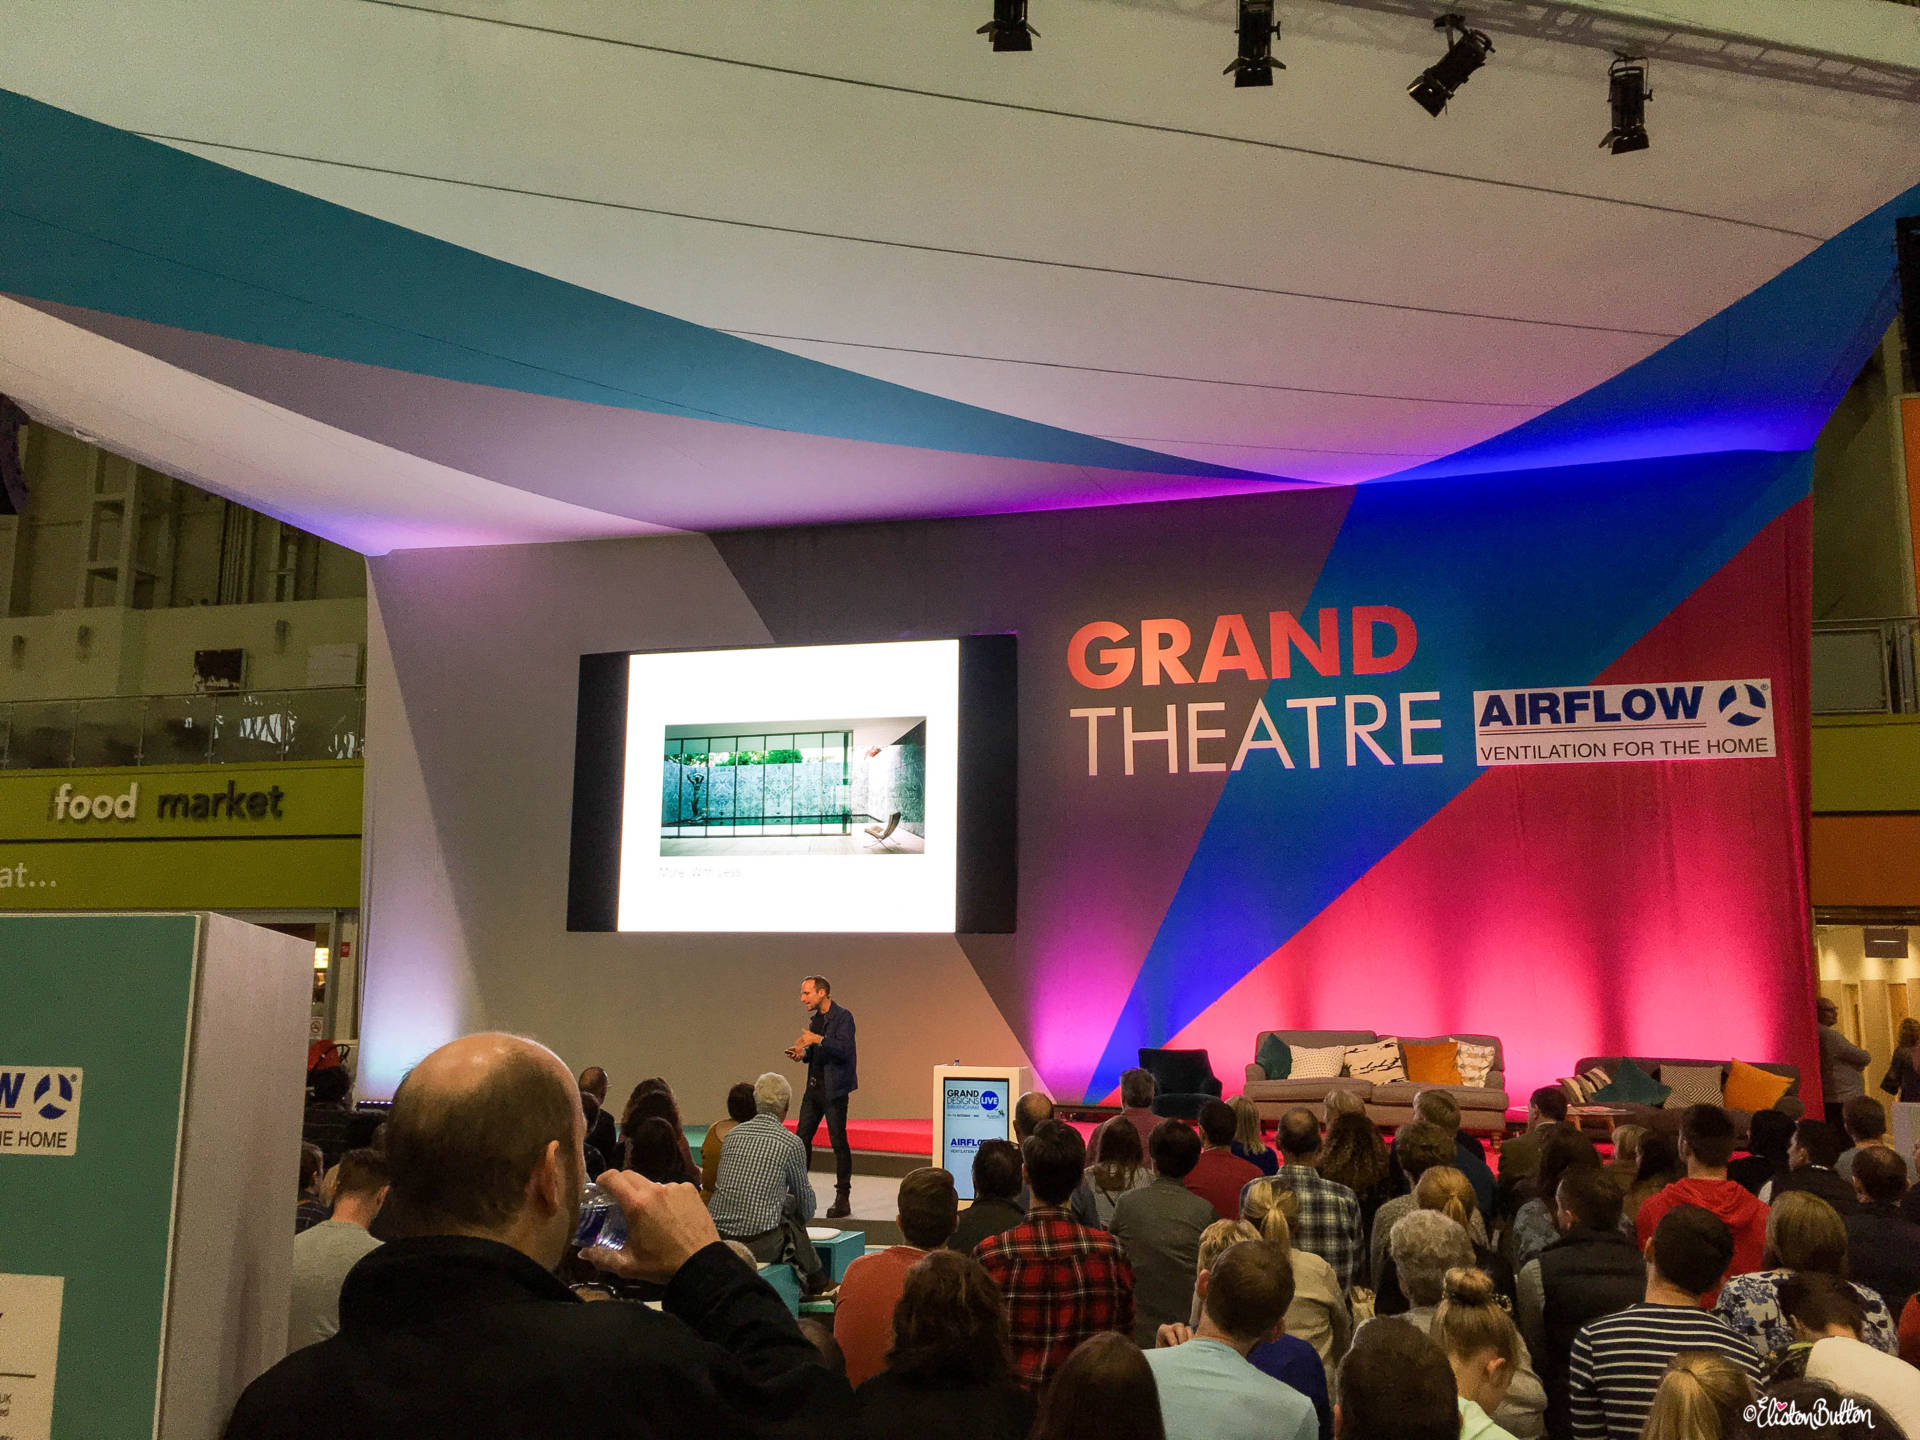 The Grand Theatre Stage at Grand Designs Live 2017 with Eliston Button - Grand Designs Live 2017 – Part Two at www.elistonbutton.com - Eliston Button - That Crafty Kid – Art, Design, Craft & Adventure.